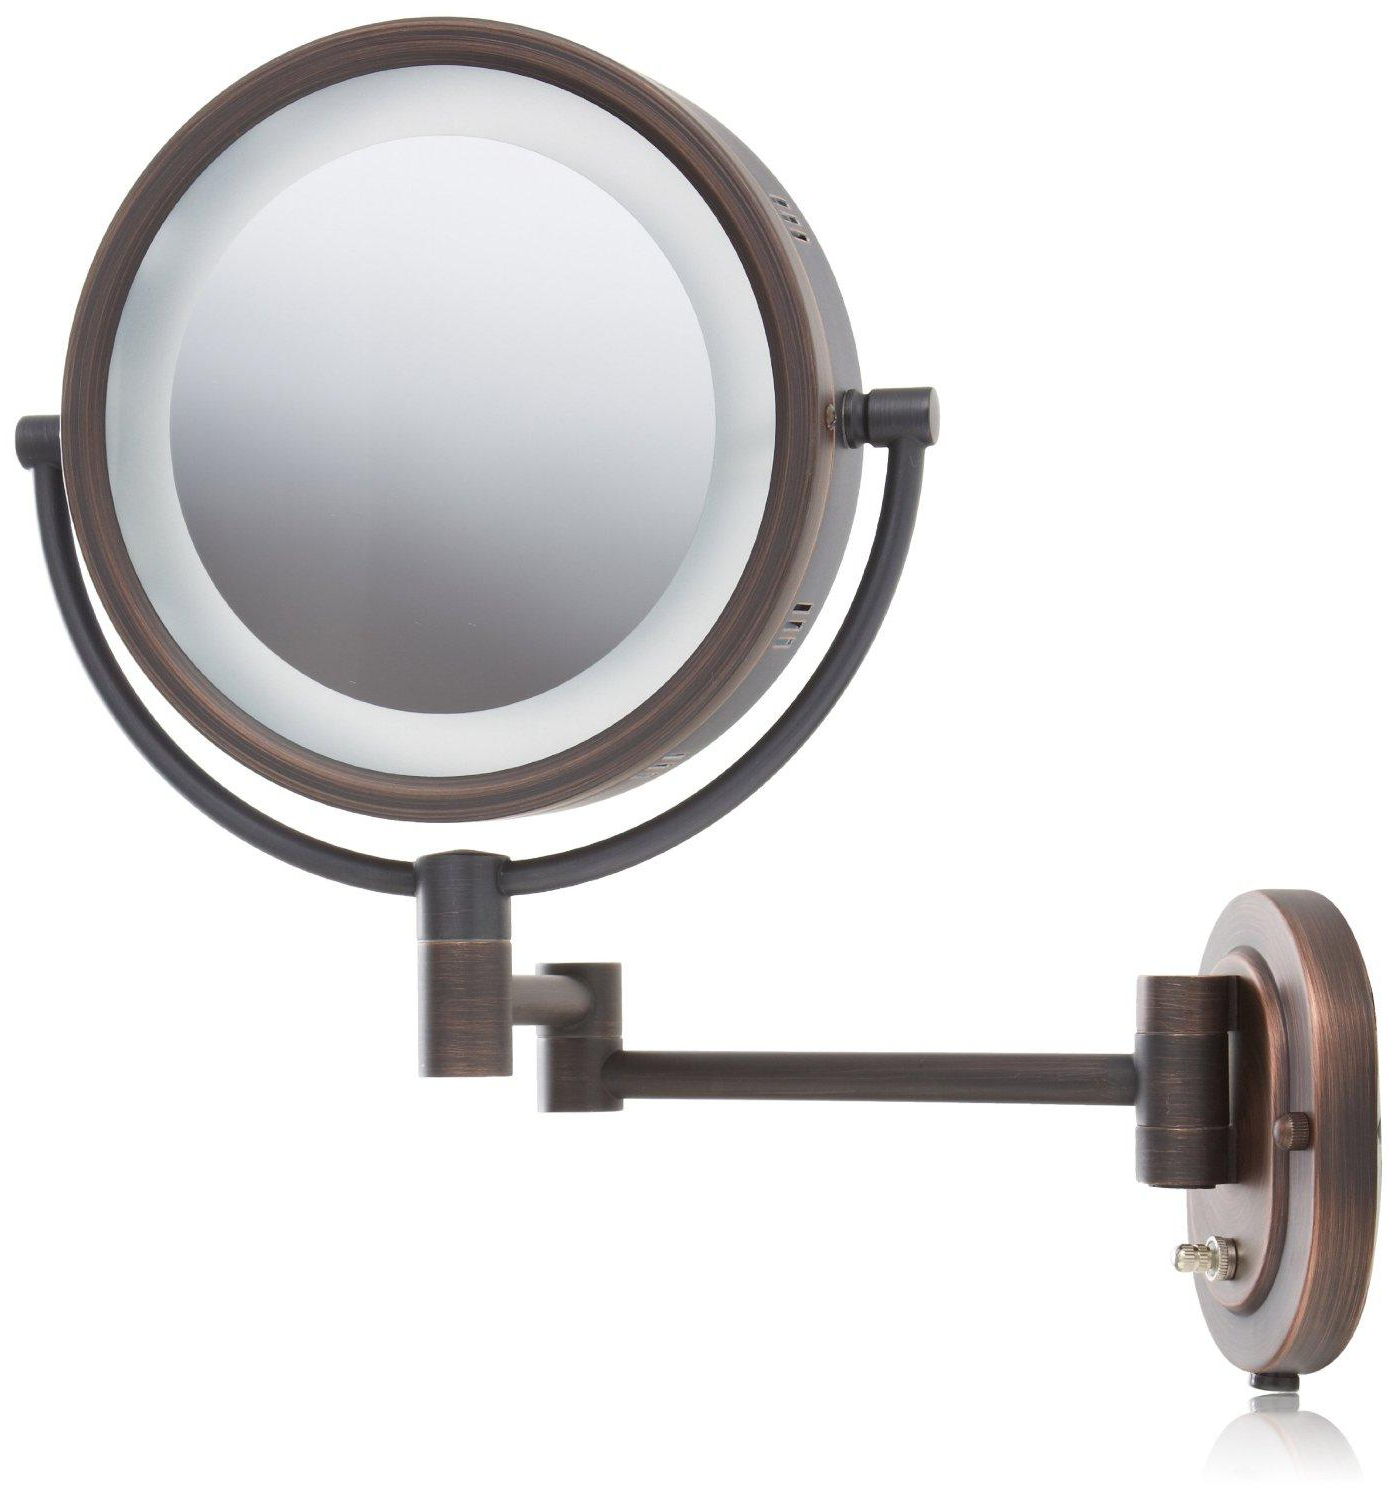 Latest Make Up Wall Mirrors Throughout Jerdon Hl65bz 8 Inch Lighted Wall Mount Makeup Mirror With 5x Magnification, Bronze Finish (View 18 of 20)